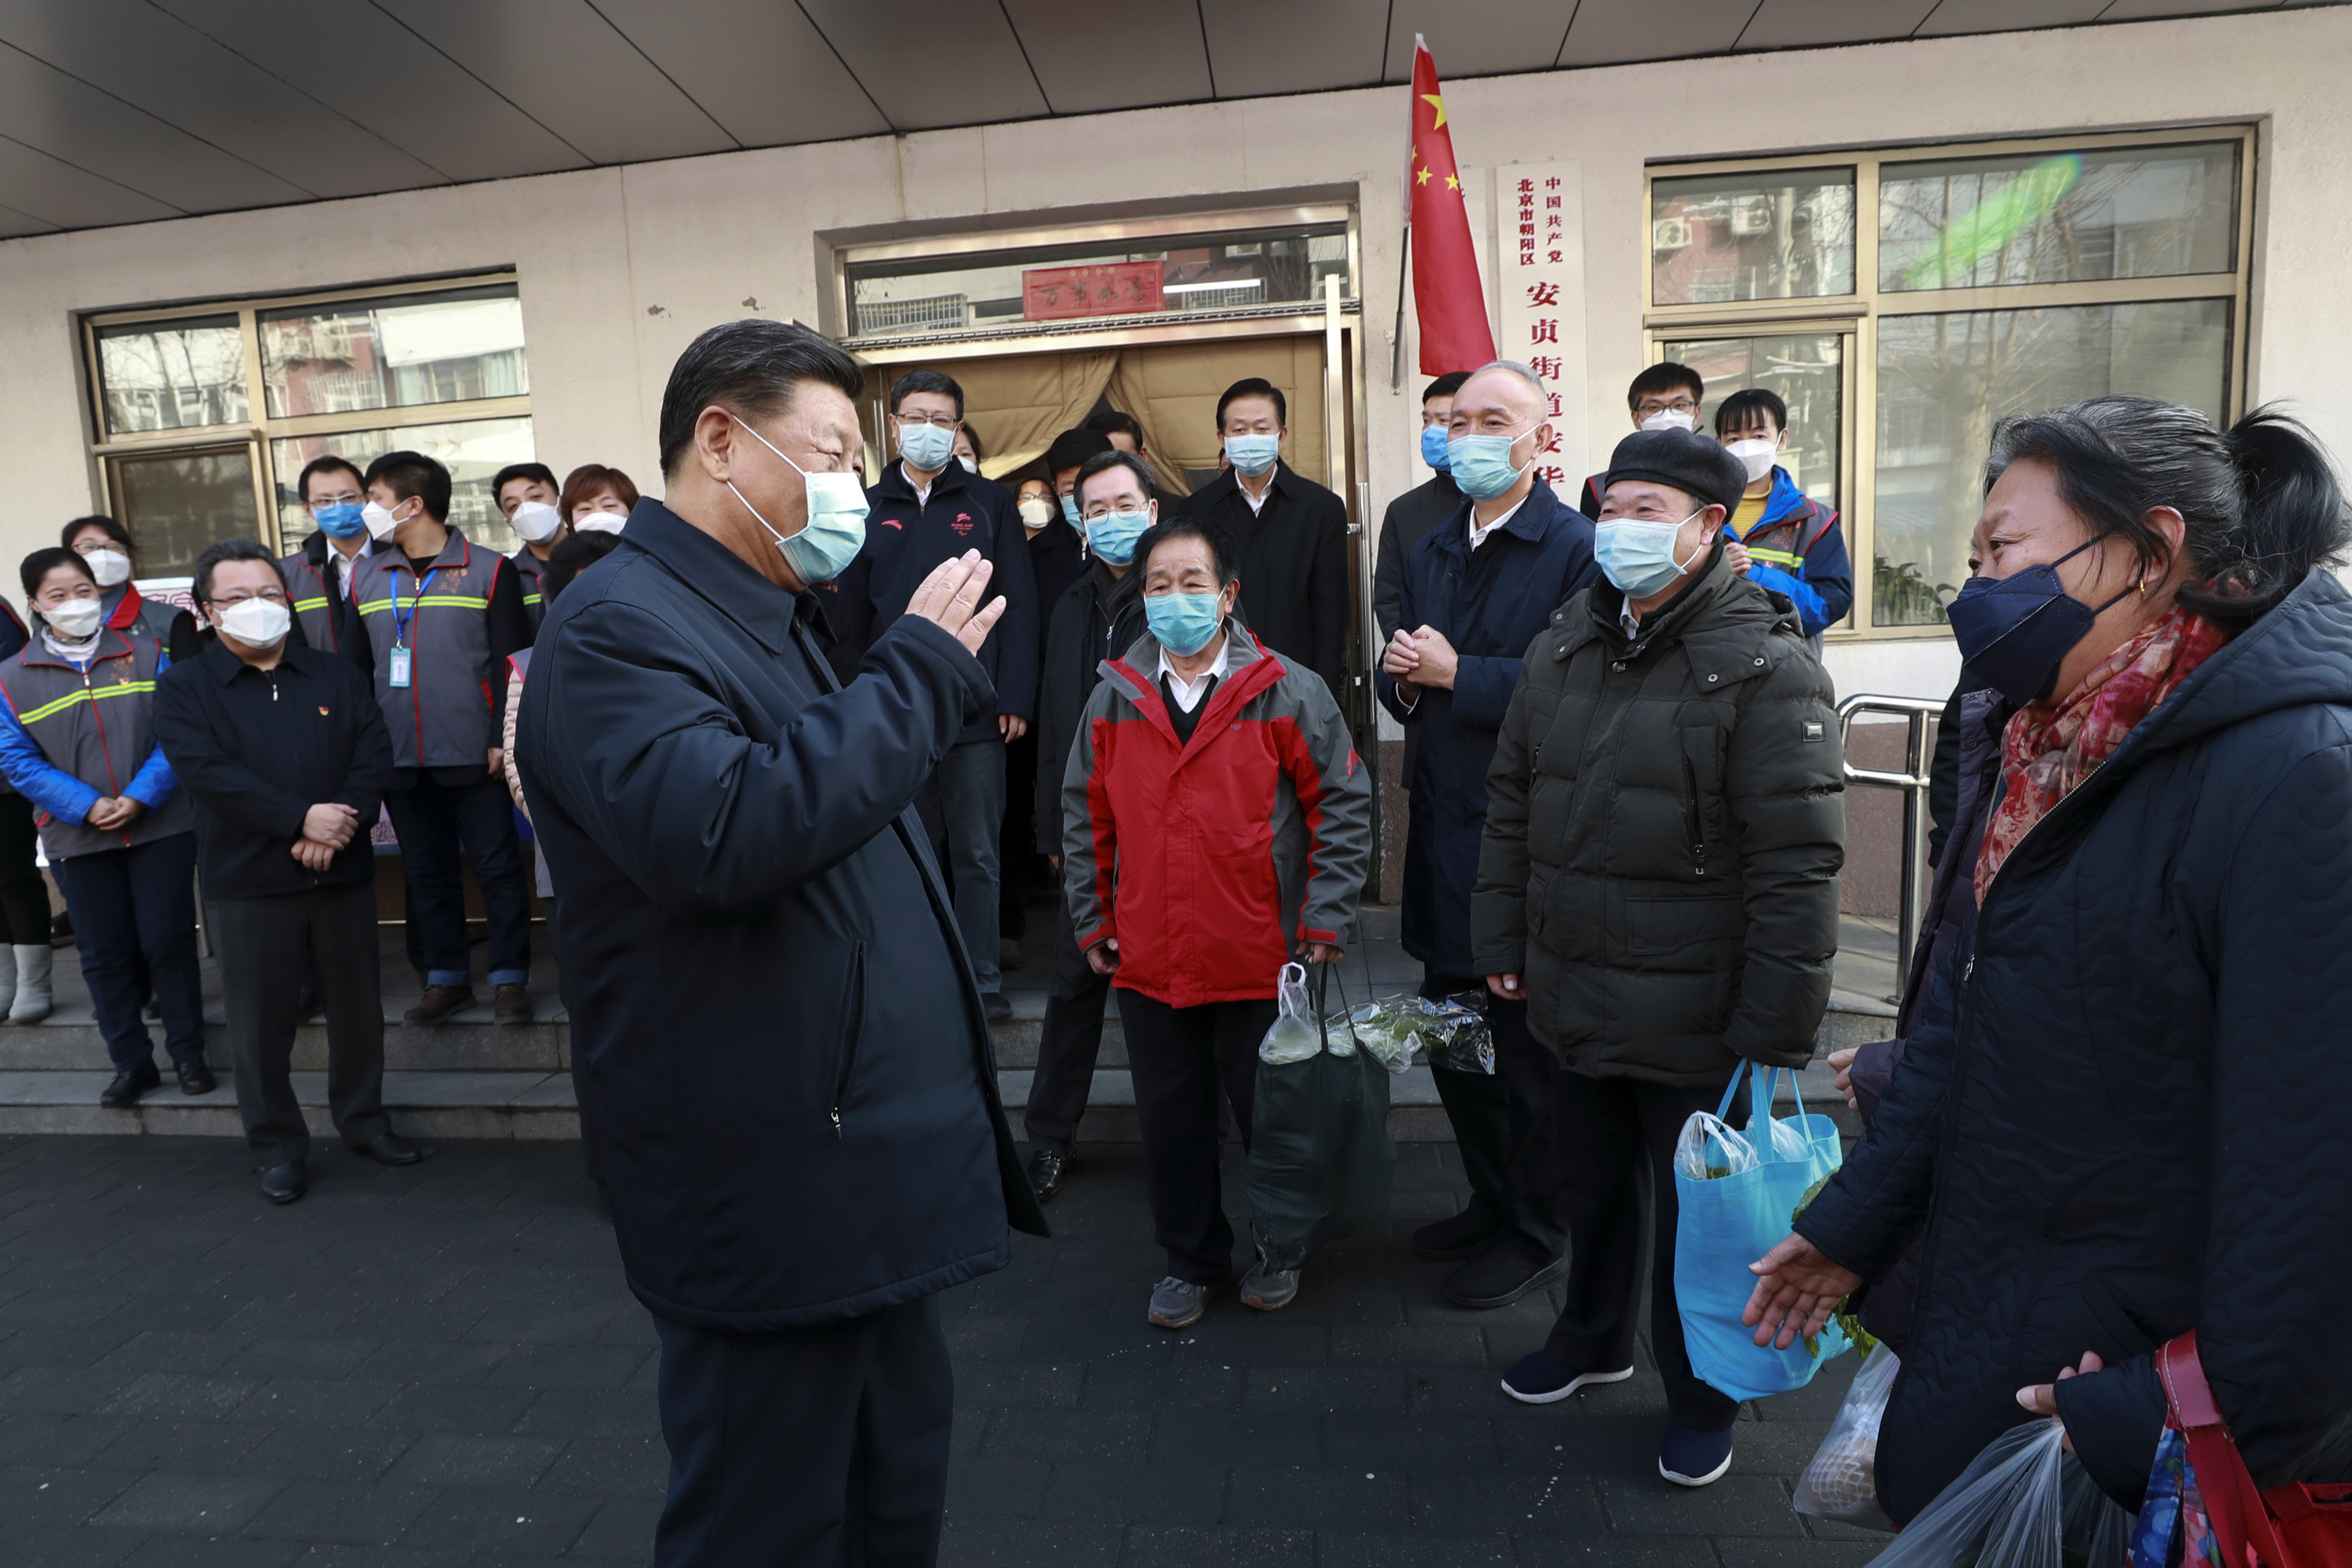 President Xi Jinping was eeen greeting staff and residents outside the hospital during his visit.